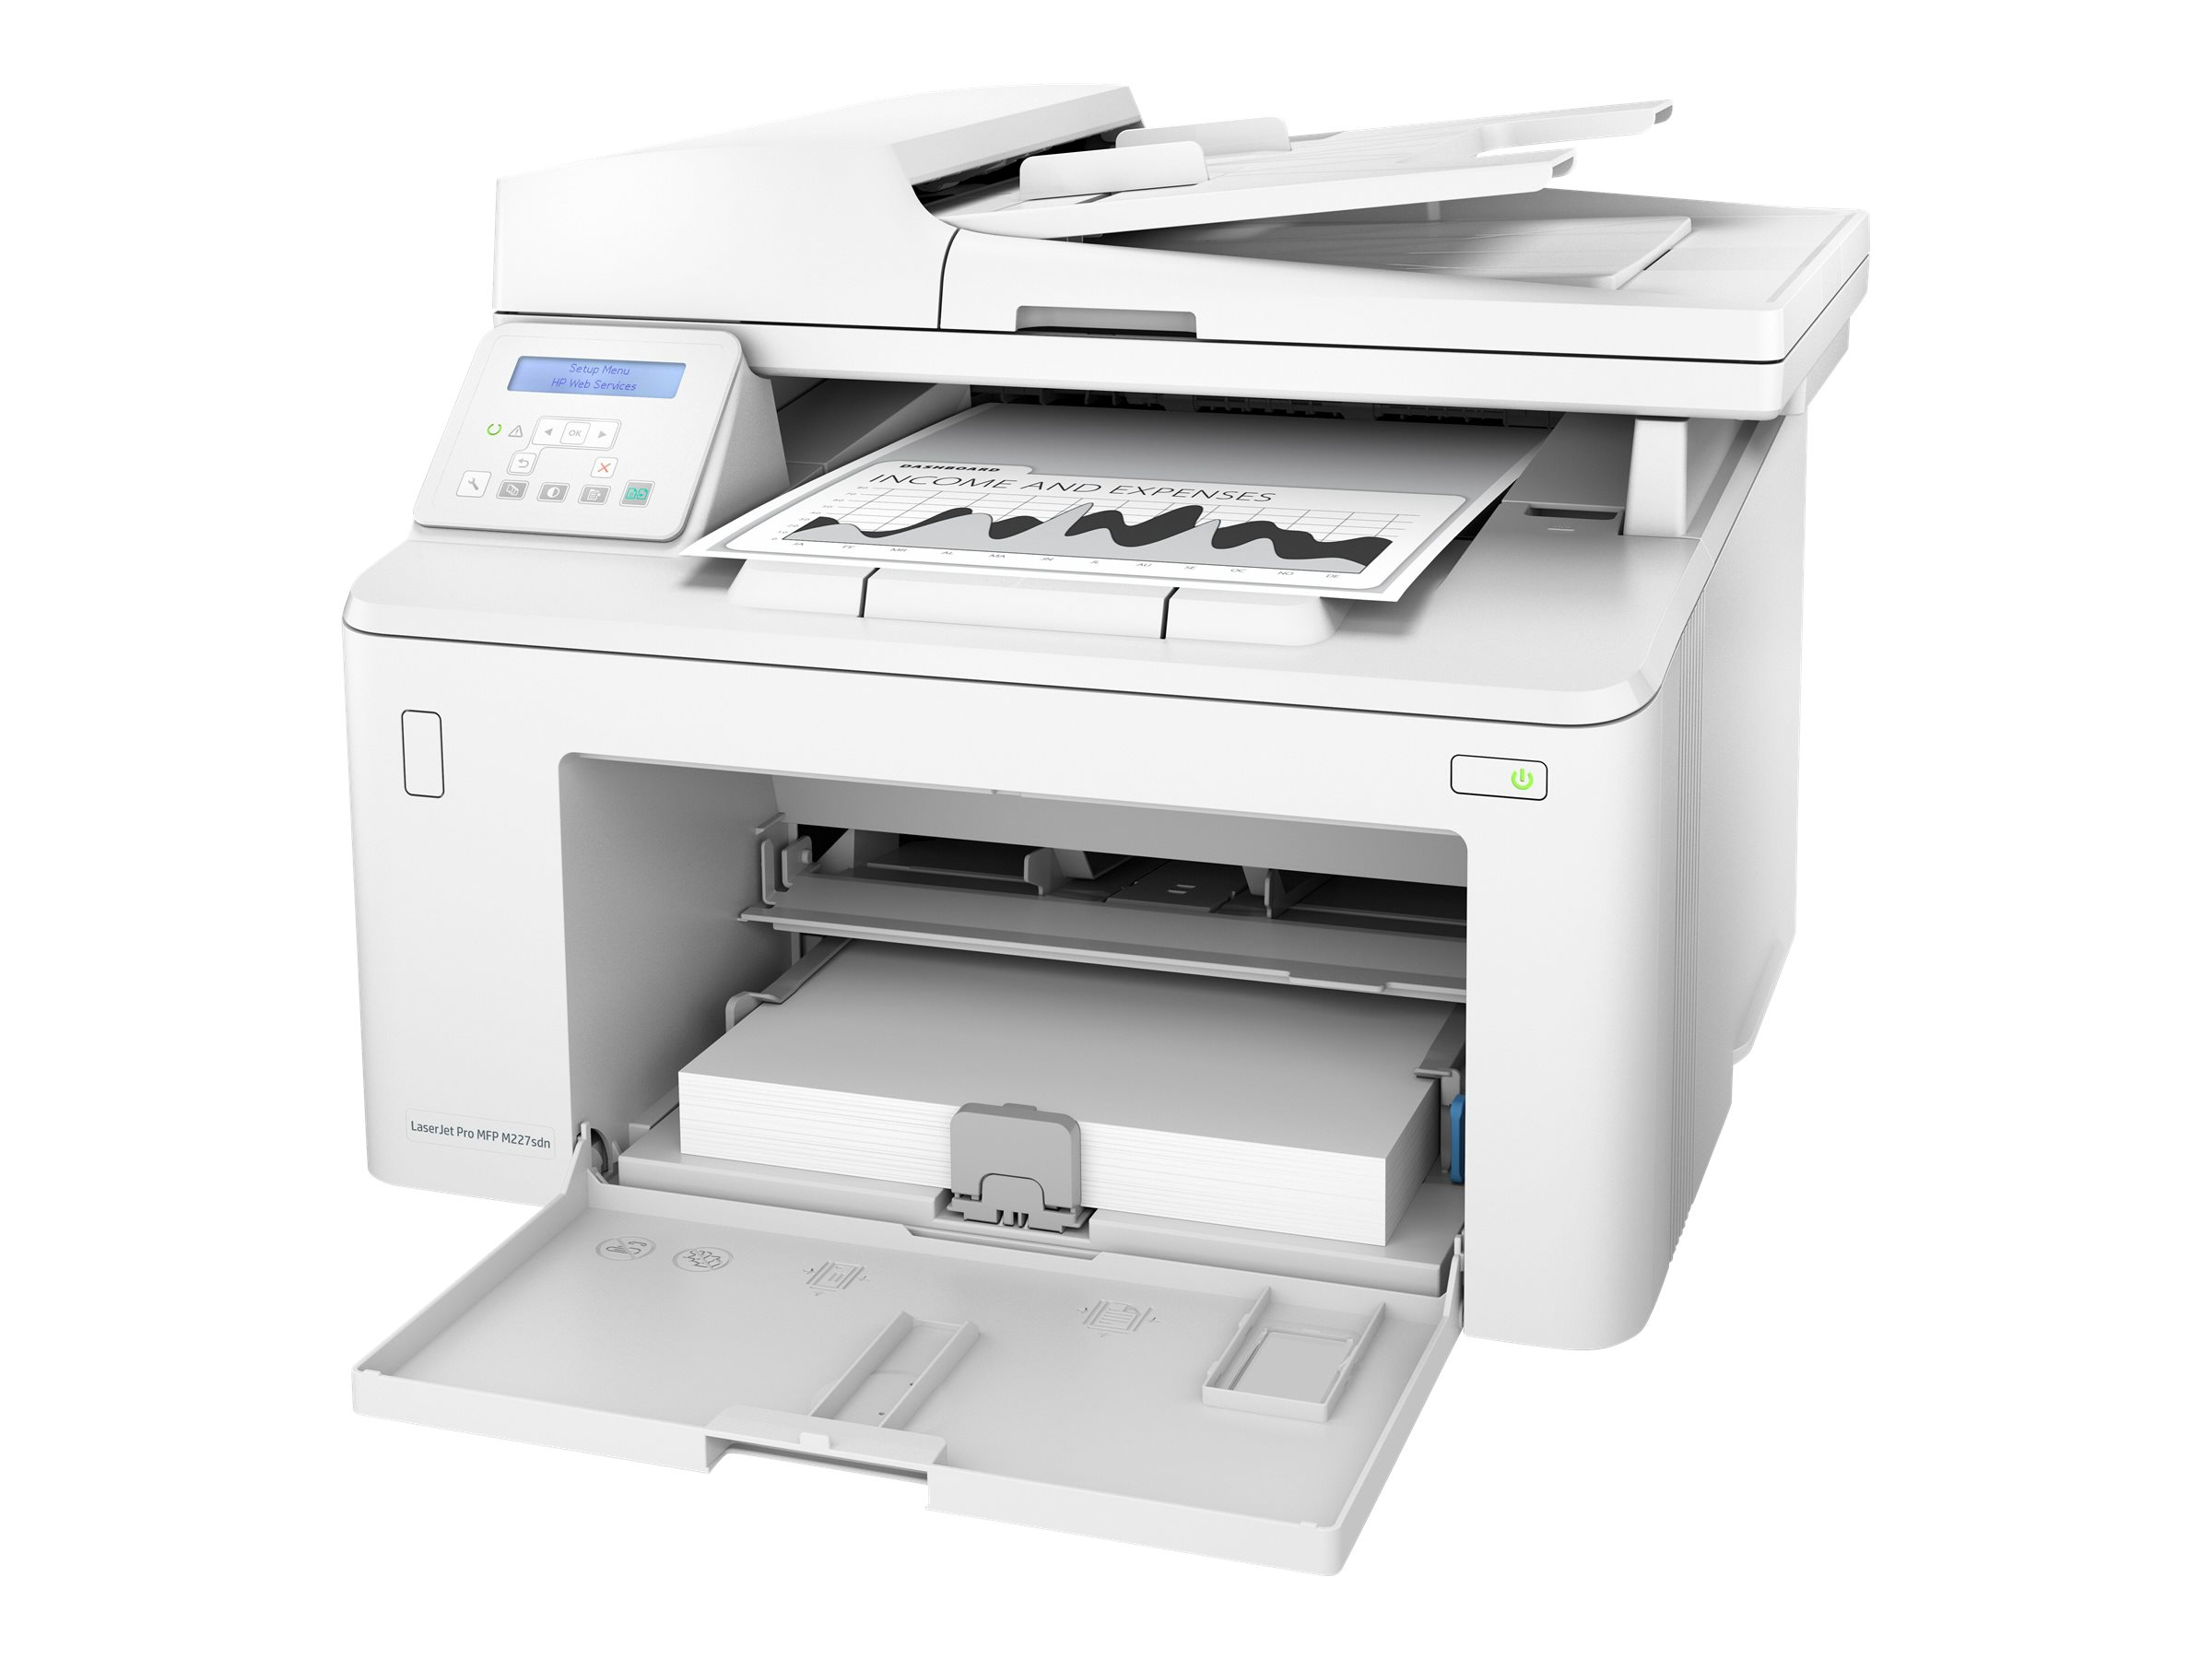 HP LaserJet Pro MFP M227sdn - Multifunktionsdrucker - s/w - Laser - Legal (216 x 356 mm)